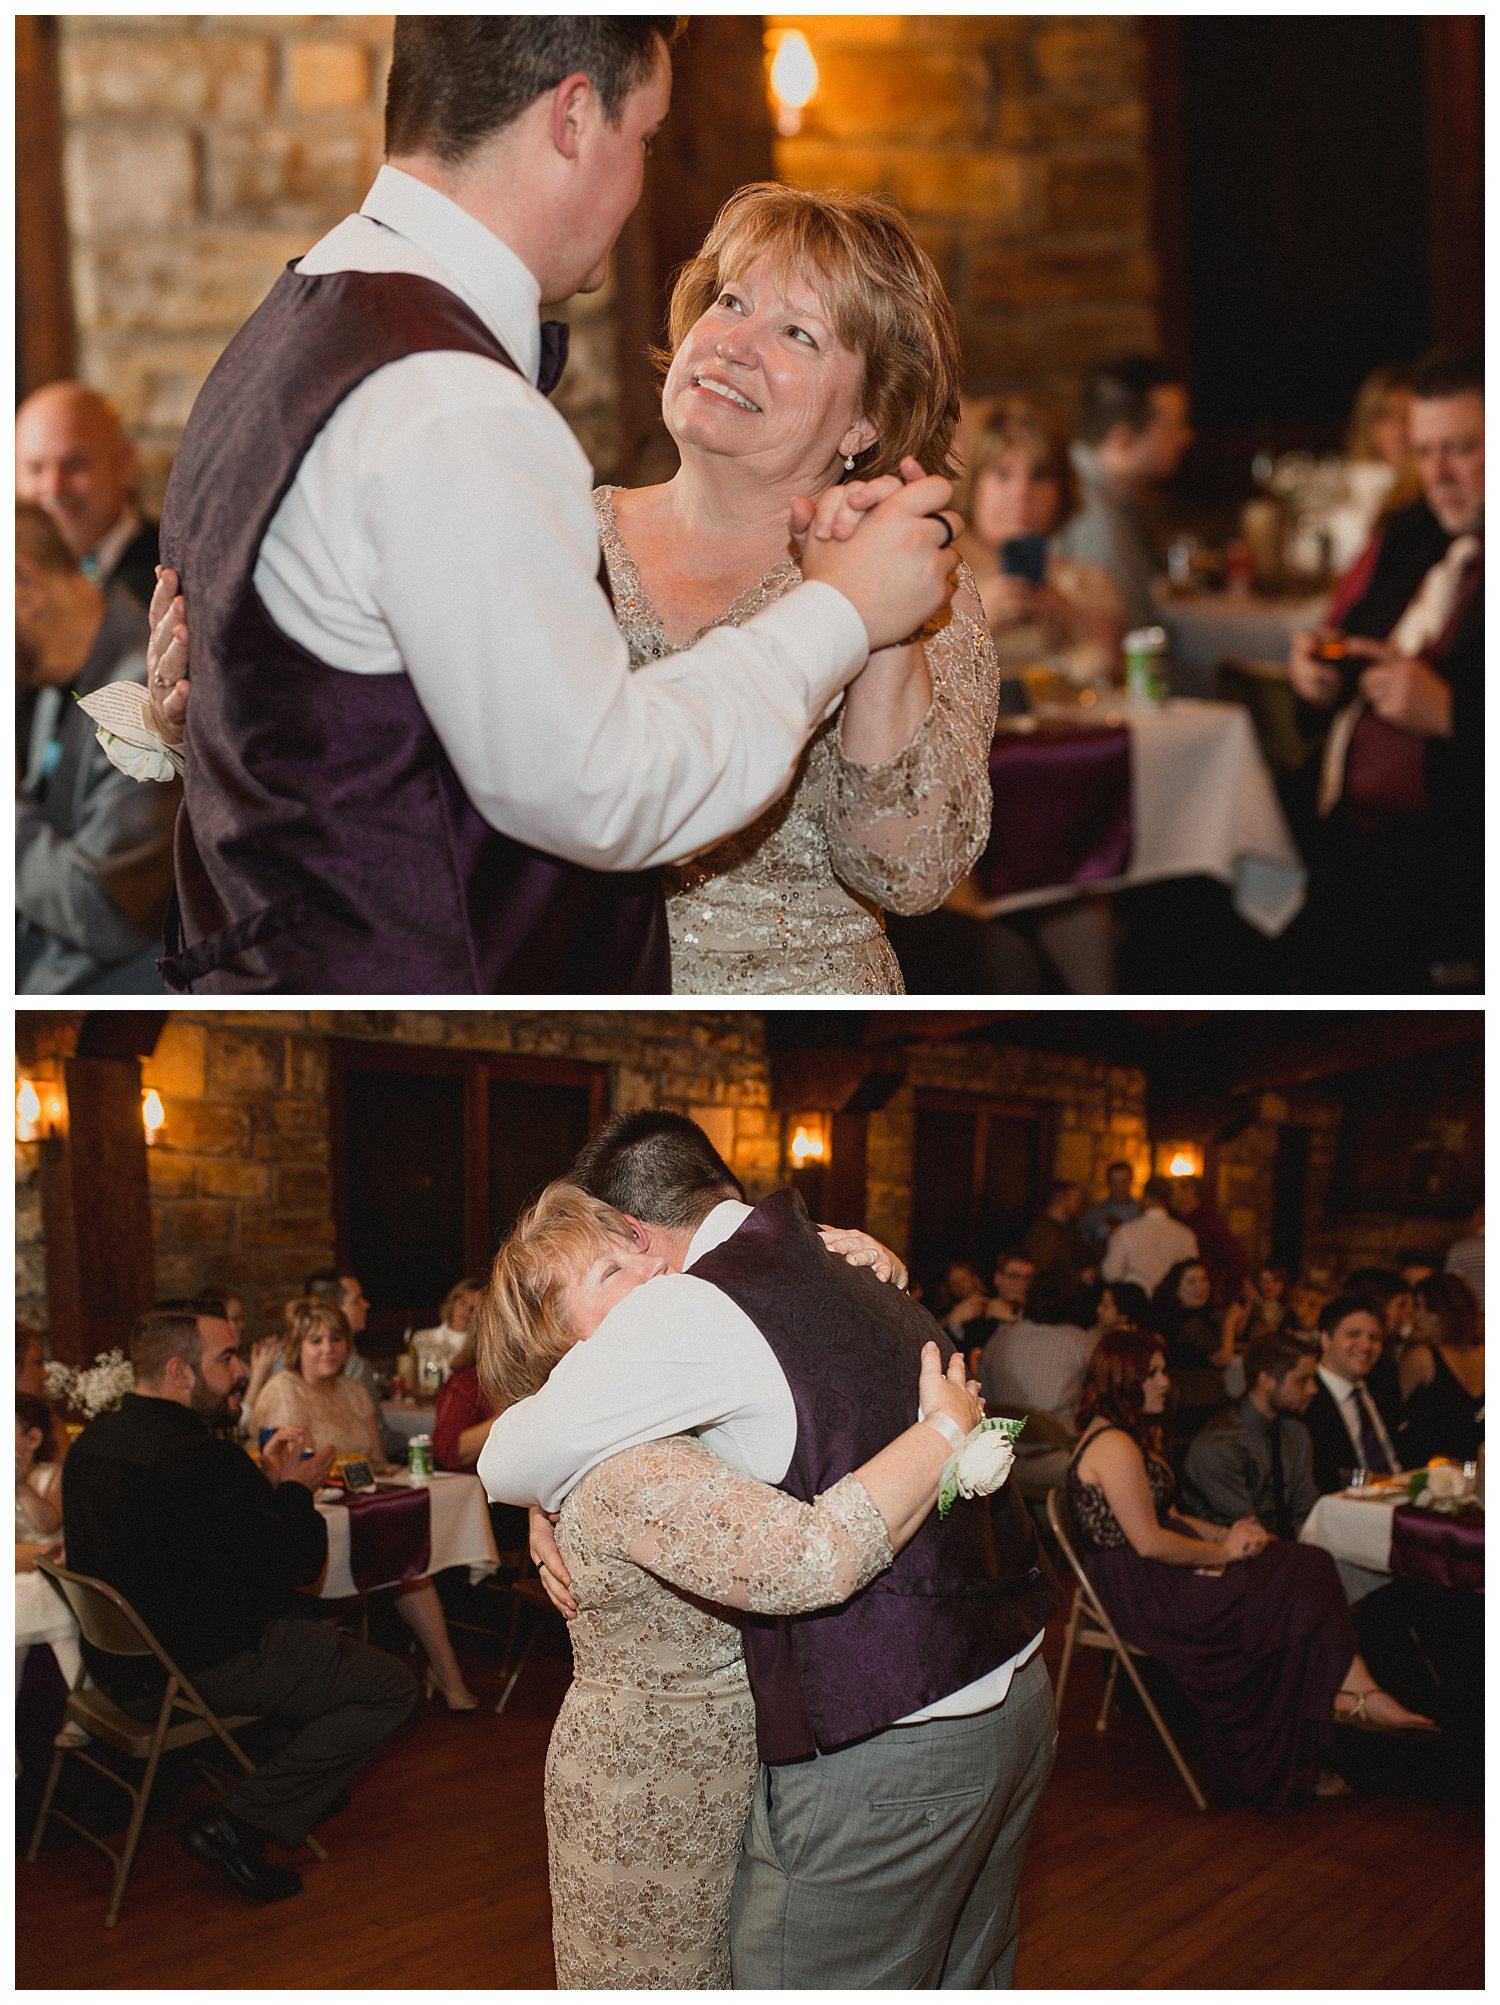 Kelsey_Diane_Photography_Loose_Mansion_Wedding_Photography_Kansas_City_Victor_Lyndsay_0387.jpg